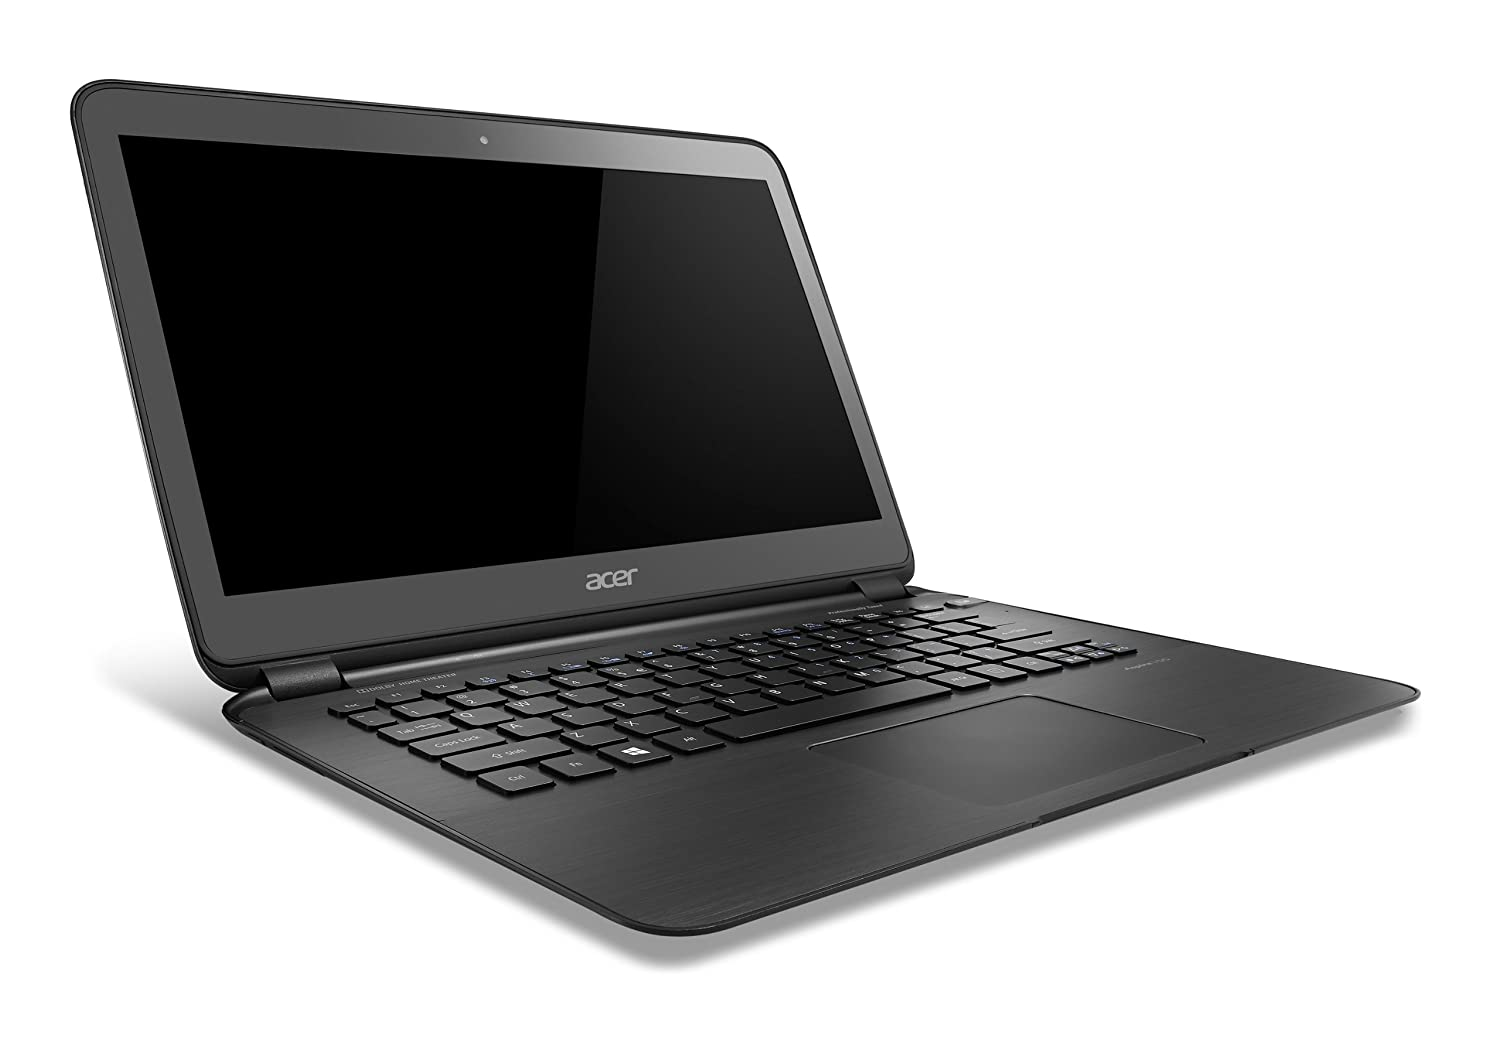 Acer Aspire S5-391 Intel RST Drivers for Mac